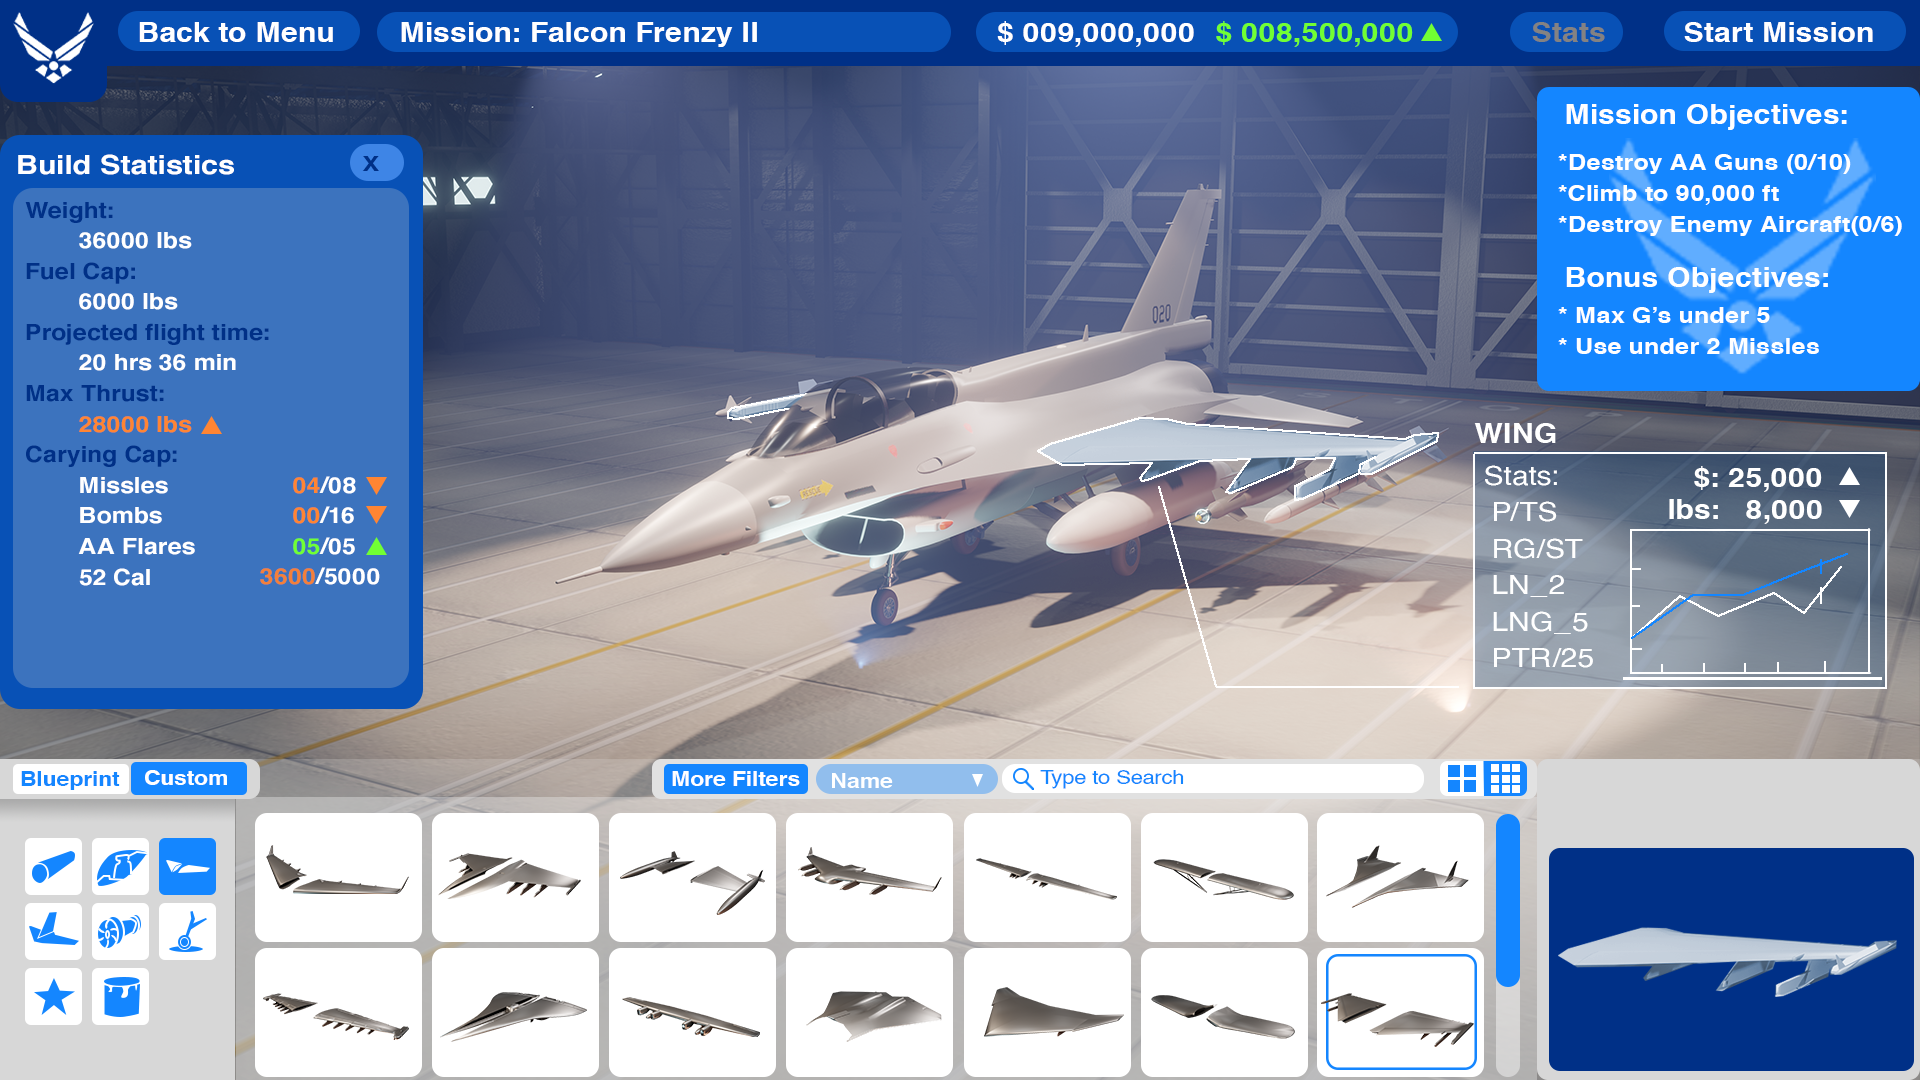 The IMG Studio is developing a video game that the Air Force can use to recruit and train its service members. Courtesy screenshot image.